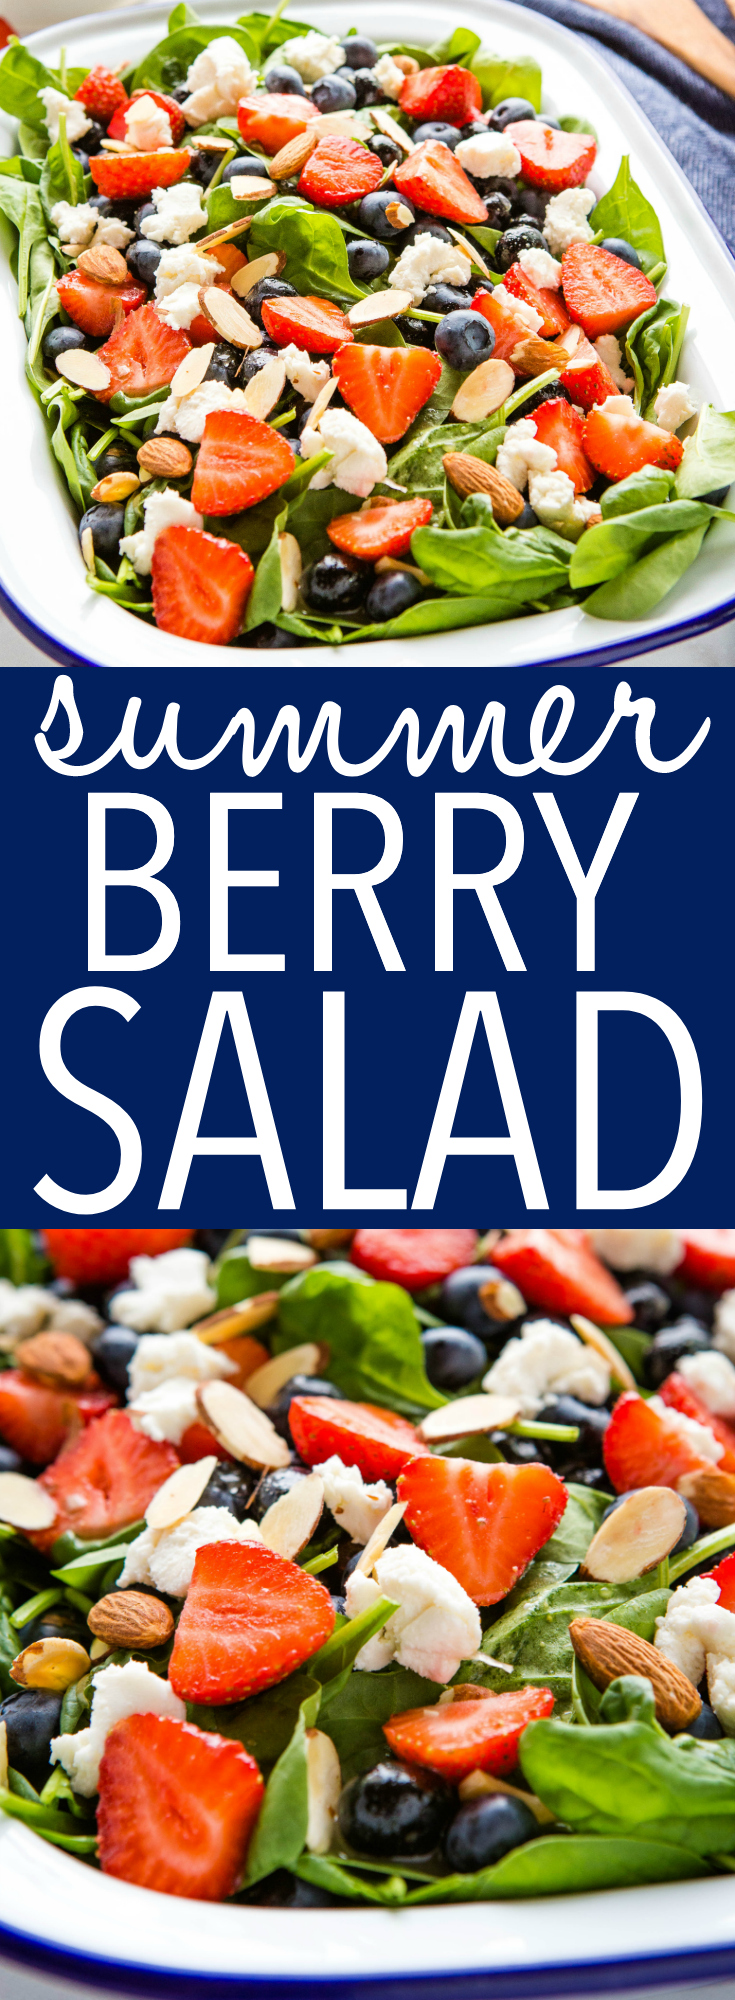 This Summer Berry Salad is the perfect side dish for hot summer days! Delicious juicy berries on a bed of baby spinach, sliced almonds, goat cheese, and a creamy lemon vinaigrette dressing. Recipe from thebusybaker.ca! #summerberrysalad #strawberries #goatcheese #spinachsalad #sidedish #barbecue #party via @busybakerblog